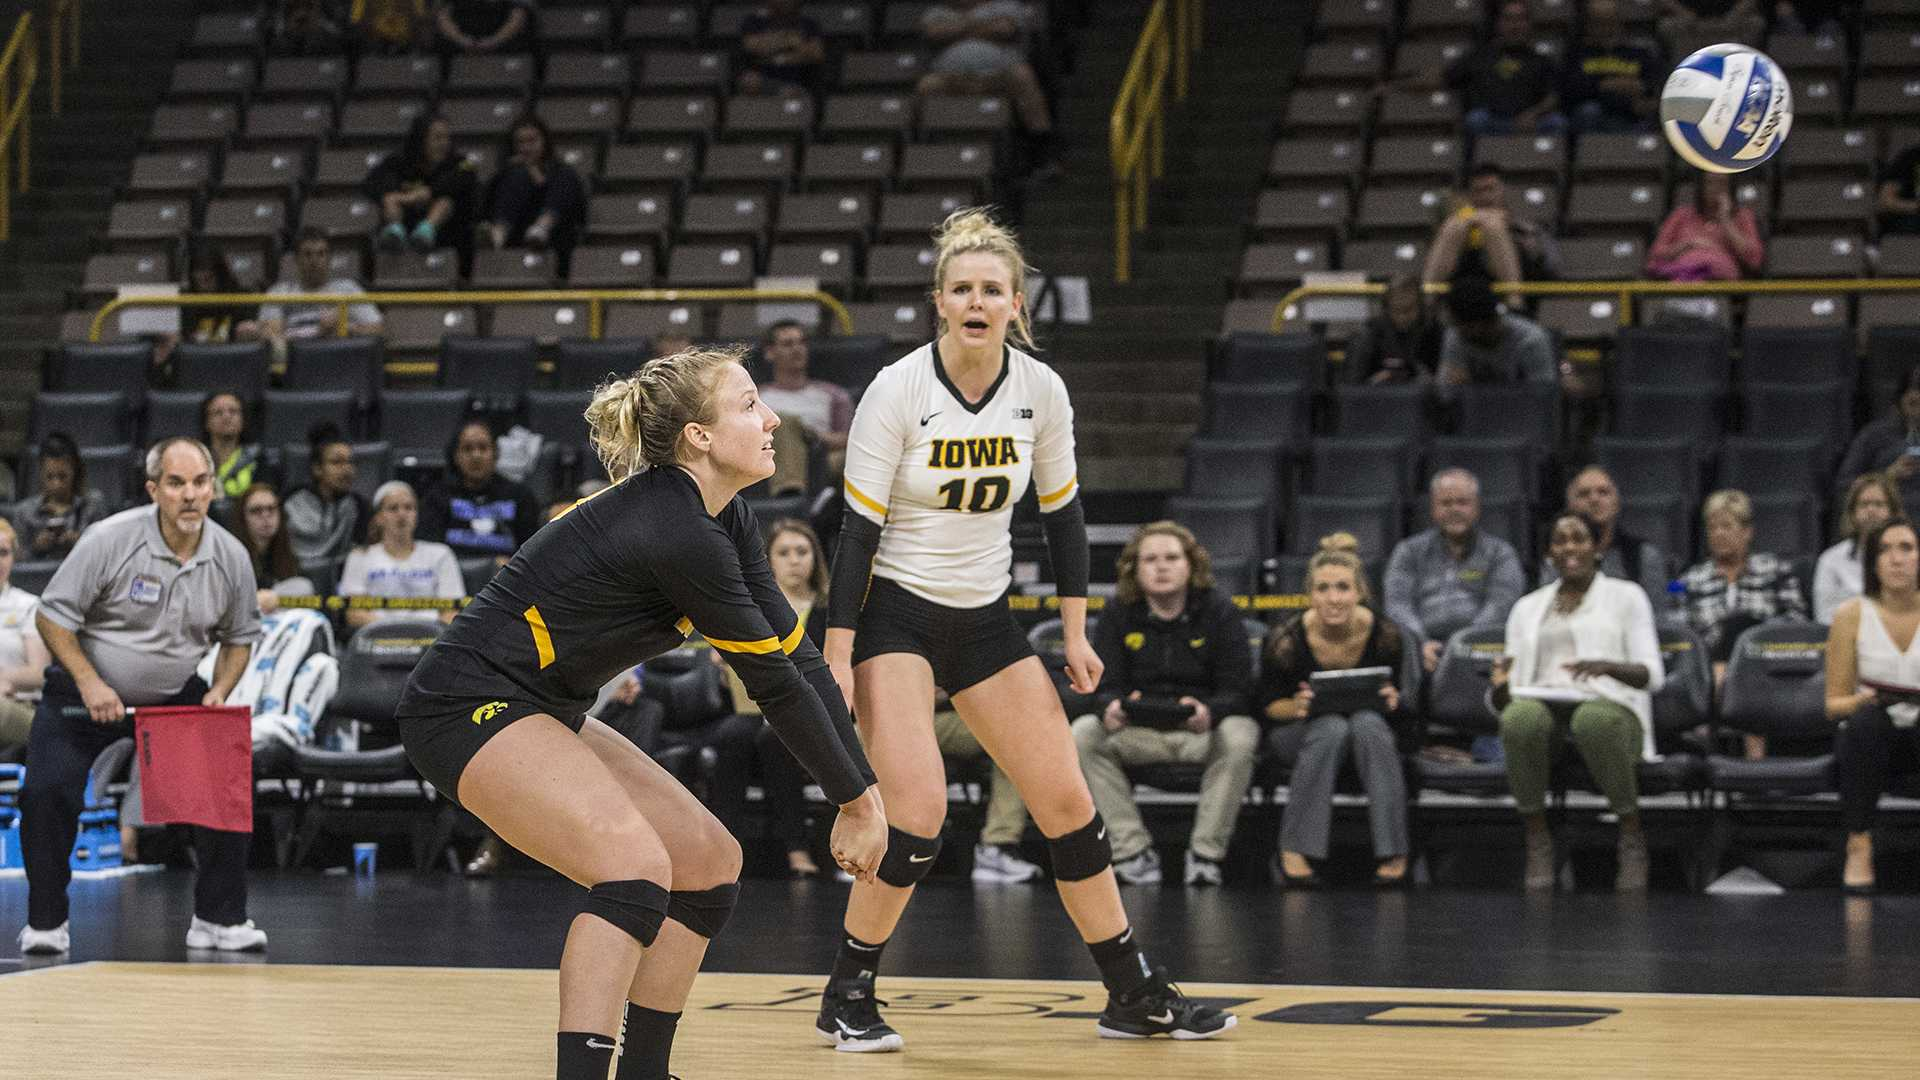 Iowa's Annika Olsen plays the ball during a match at Carver-Hawkeye Arena on Wednesday, Oct. 4, 2017. Iowa defeated Michigan 3 sets to 1. (Nick Rohlman/The Daily Iowan)